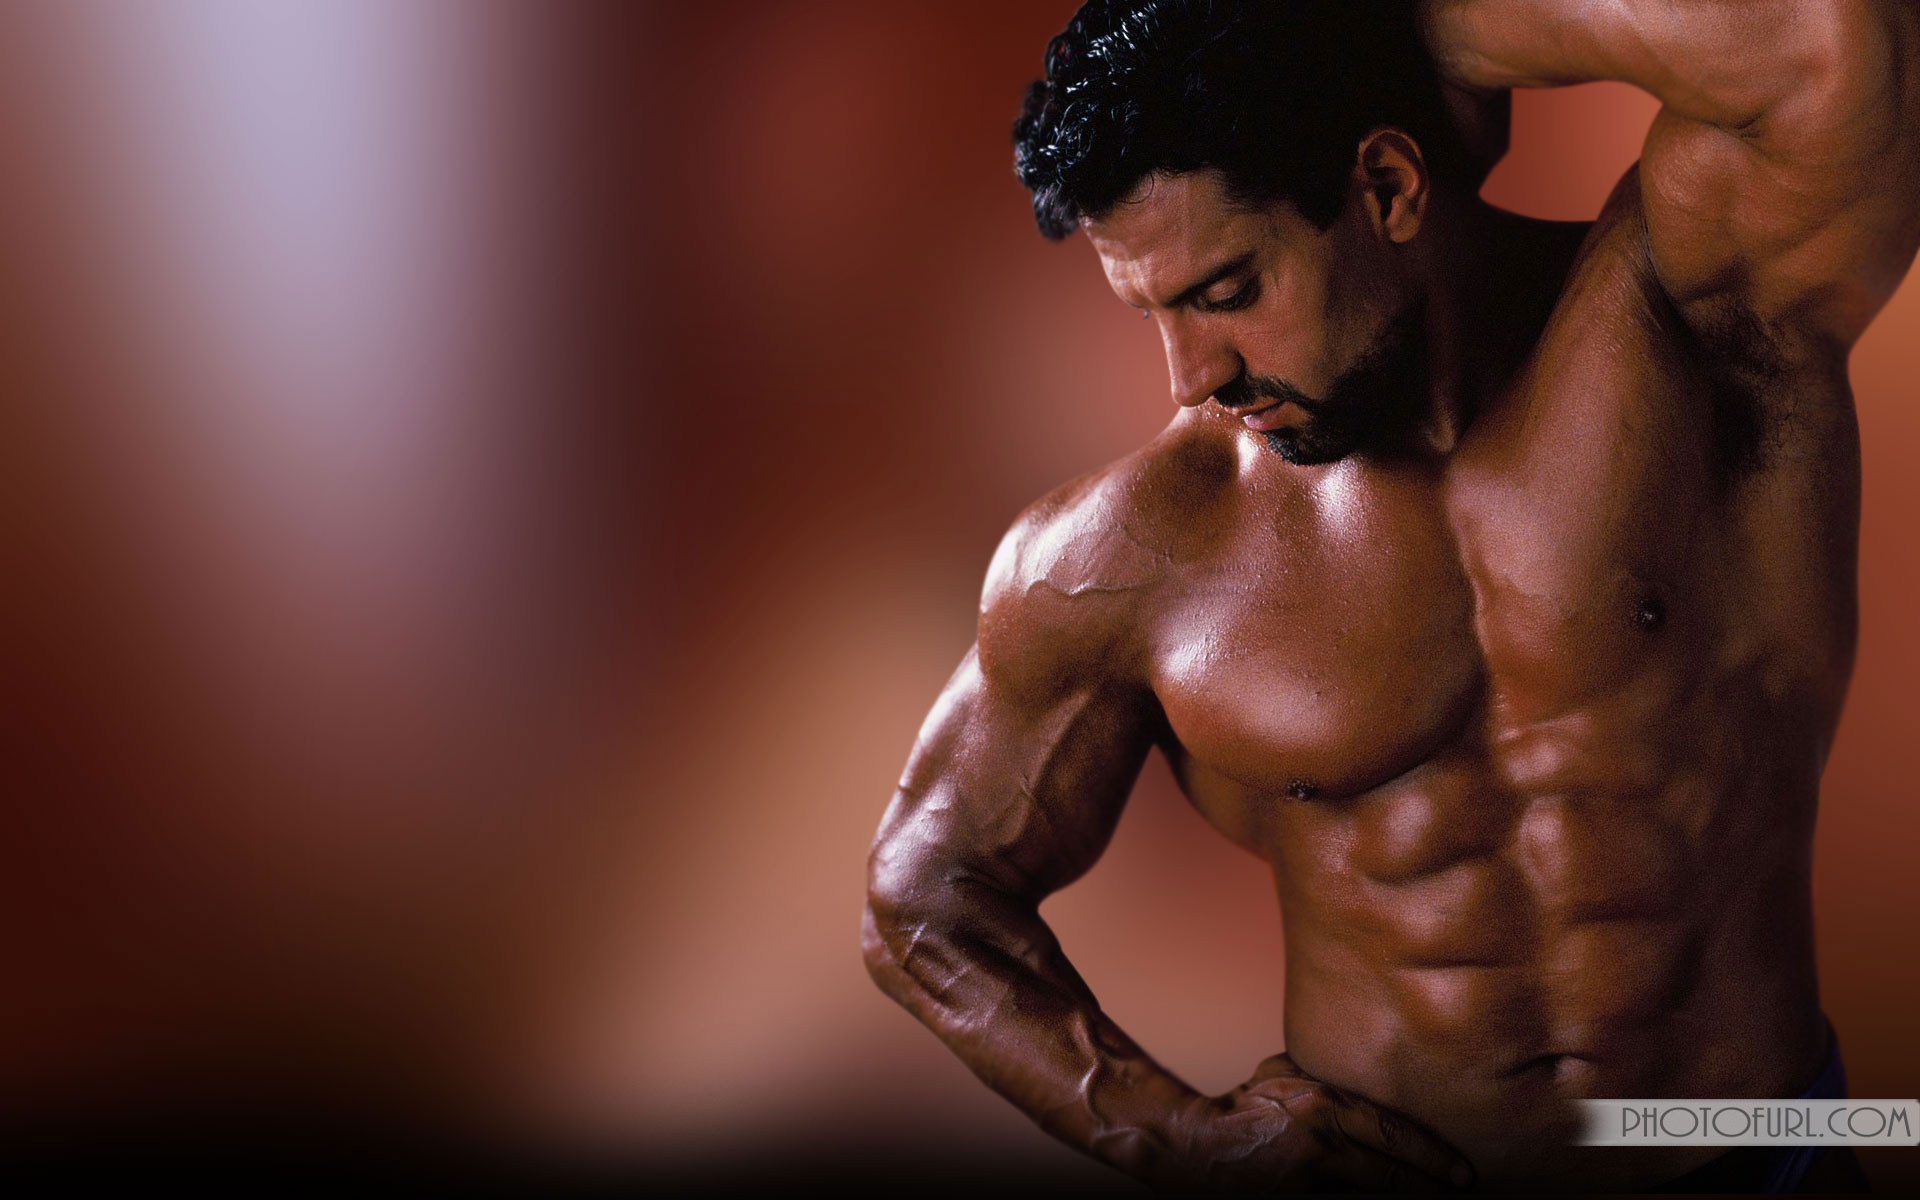 Create Your Own Motivational Body Building Photos